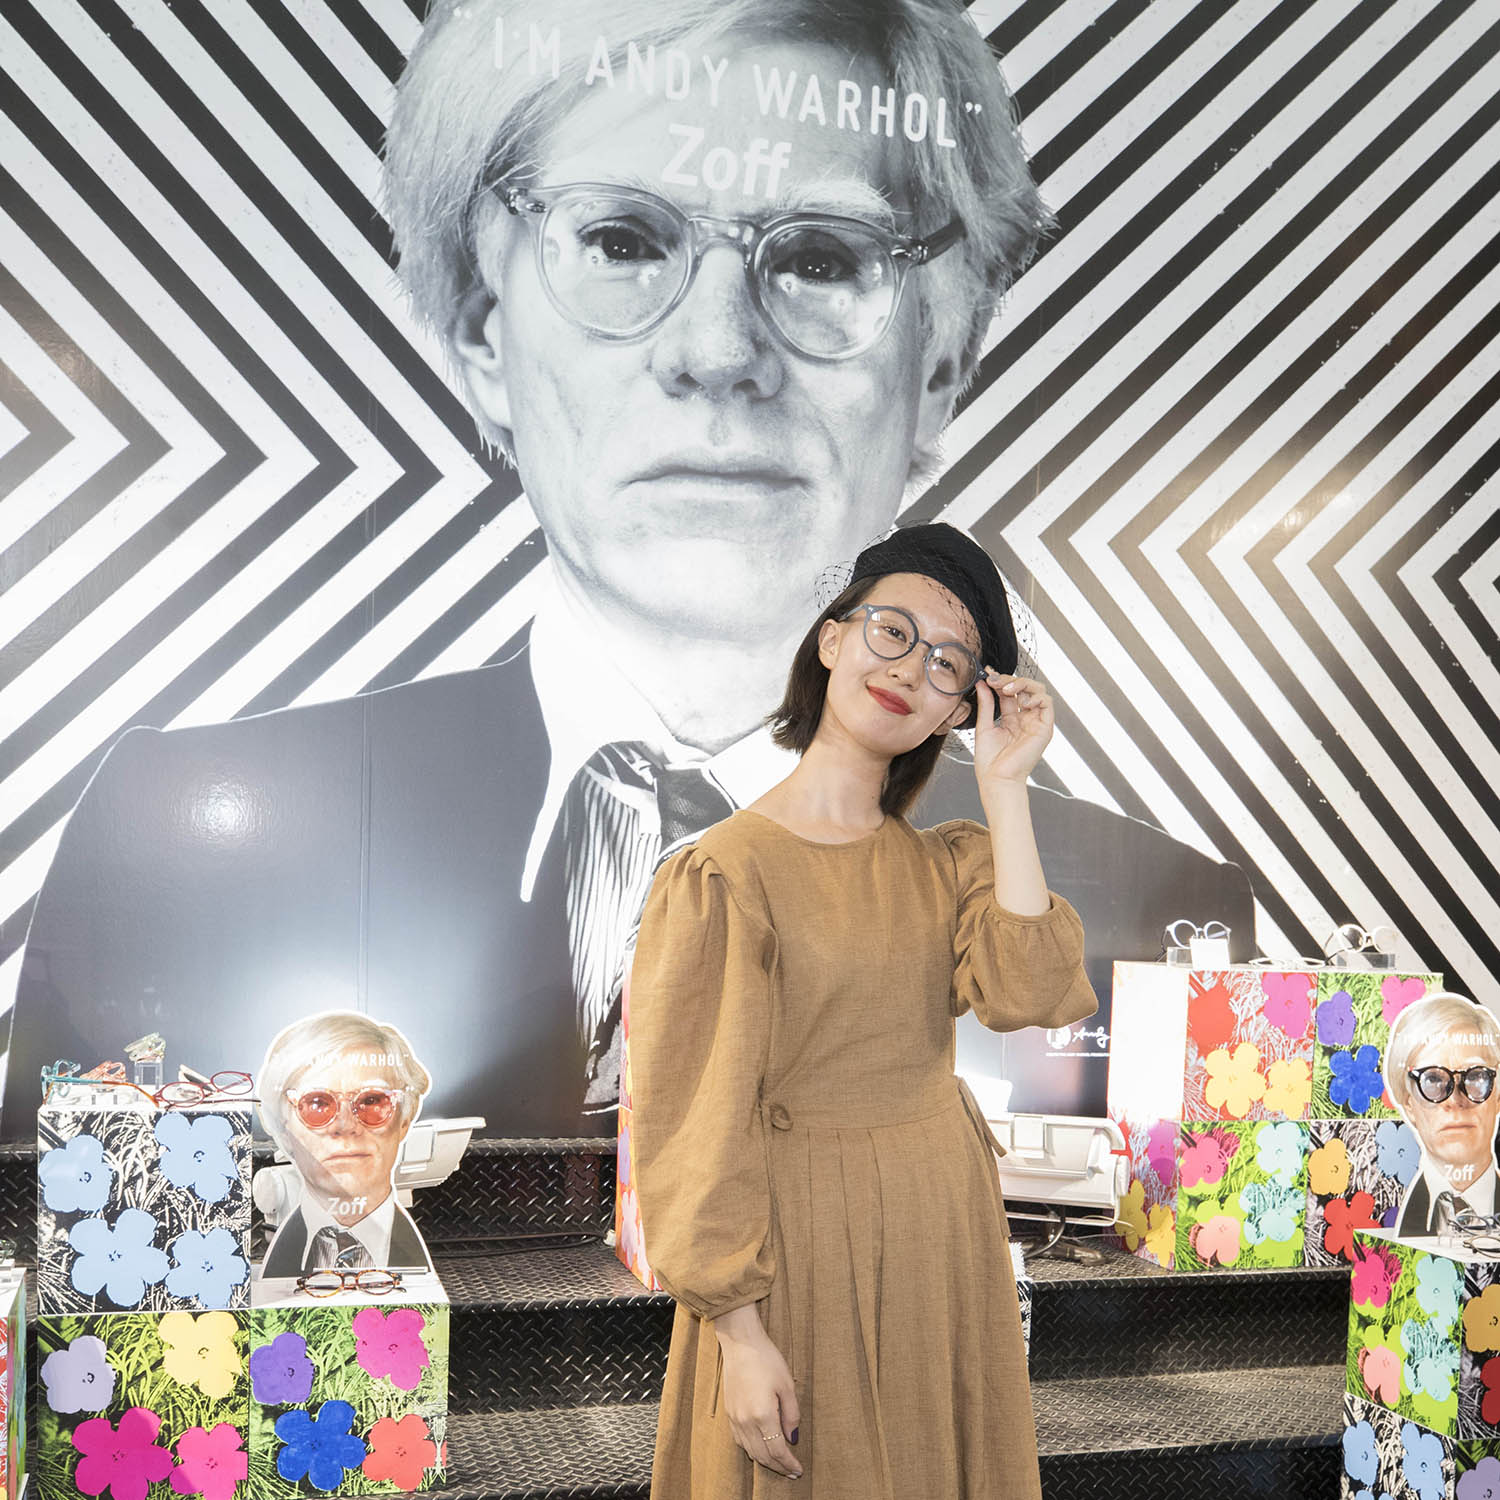 Zoff × ANDY WARHOL Press Preview & Reception Party